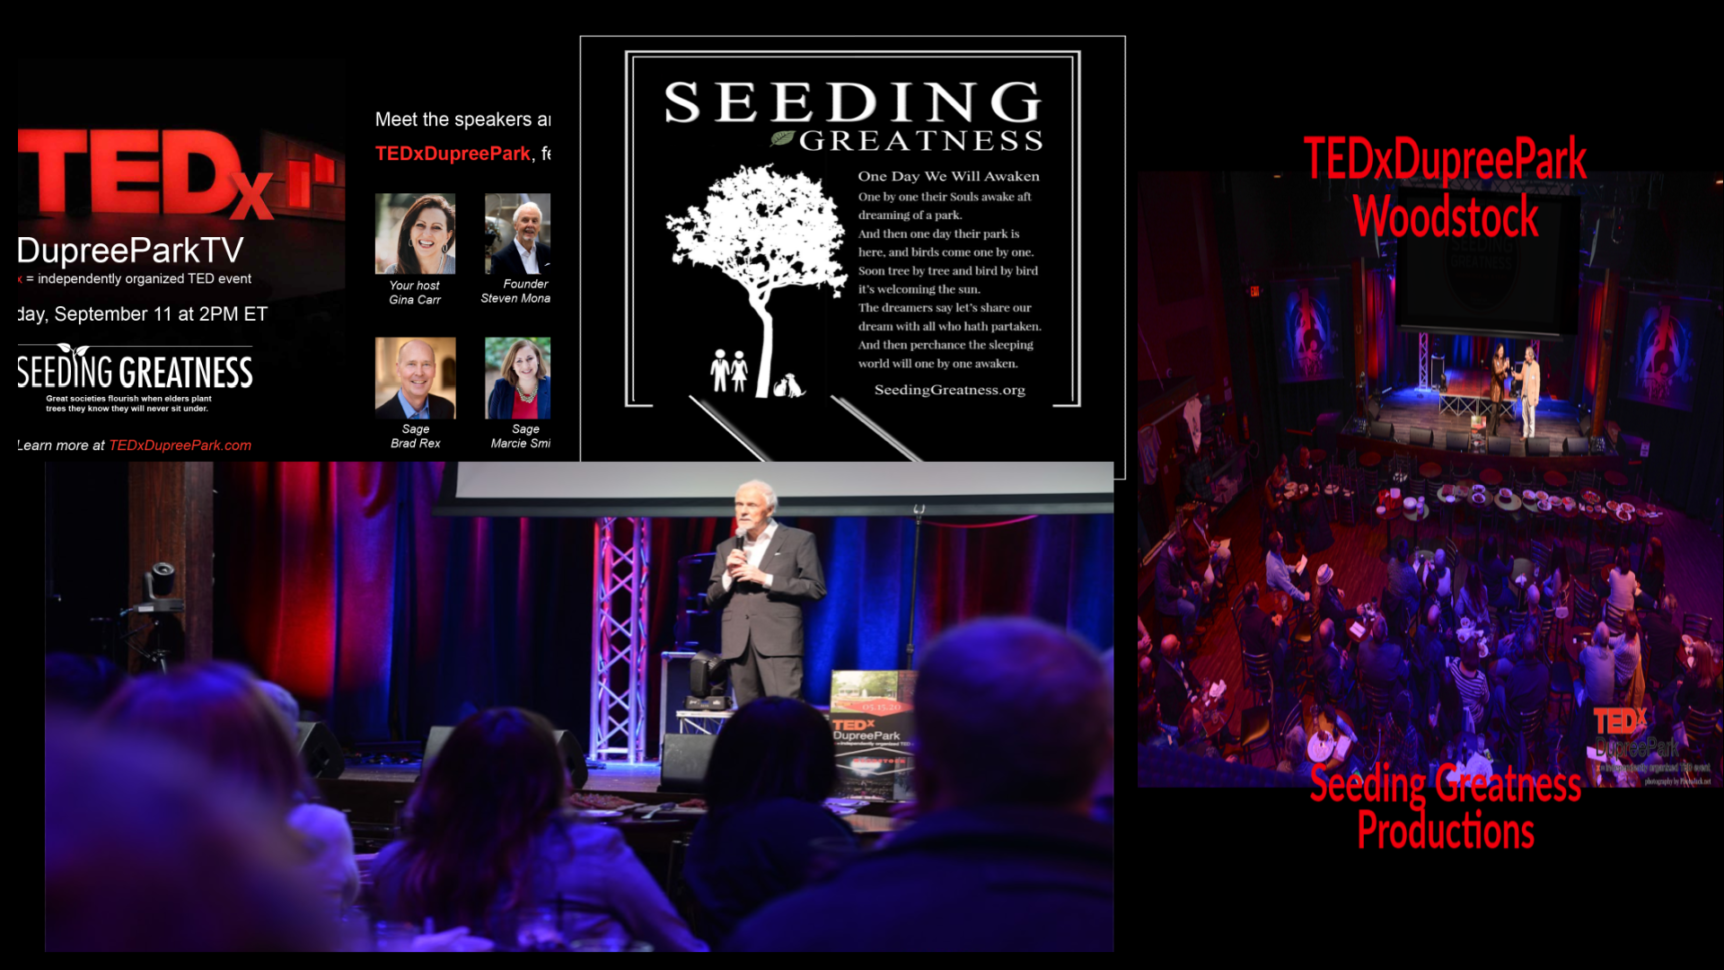 Steven Monahan Licensee, Organizer TEDx Dupree Park and Founder of Green Pets America Charities